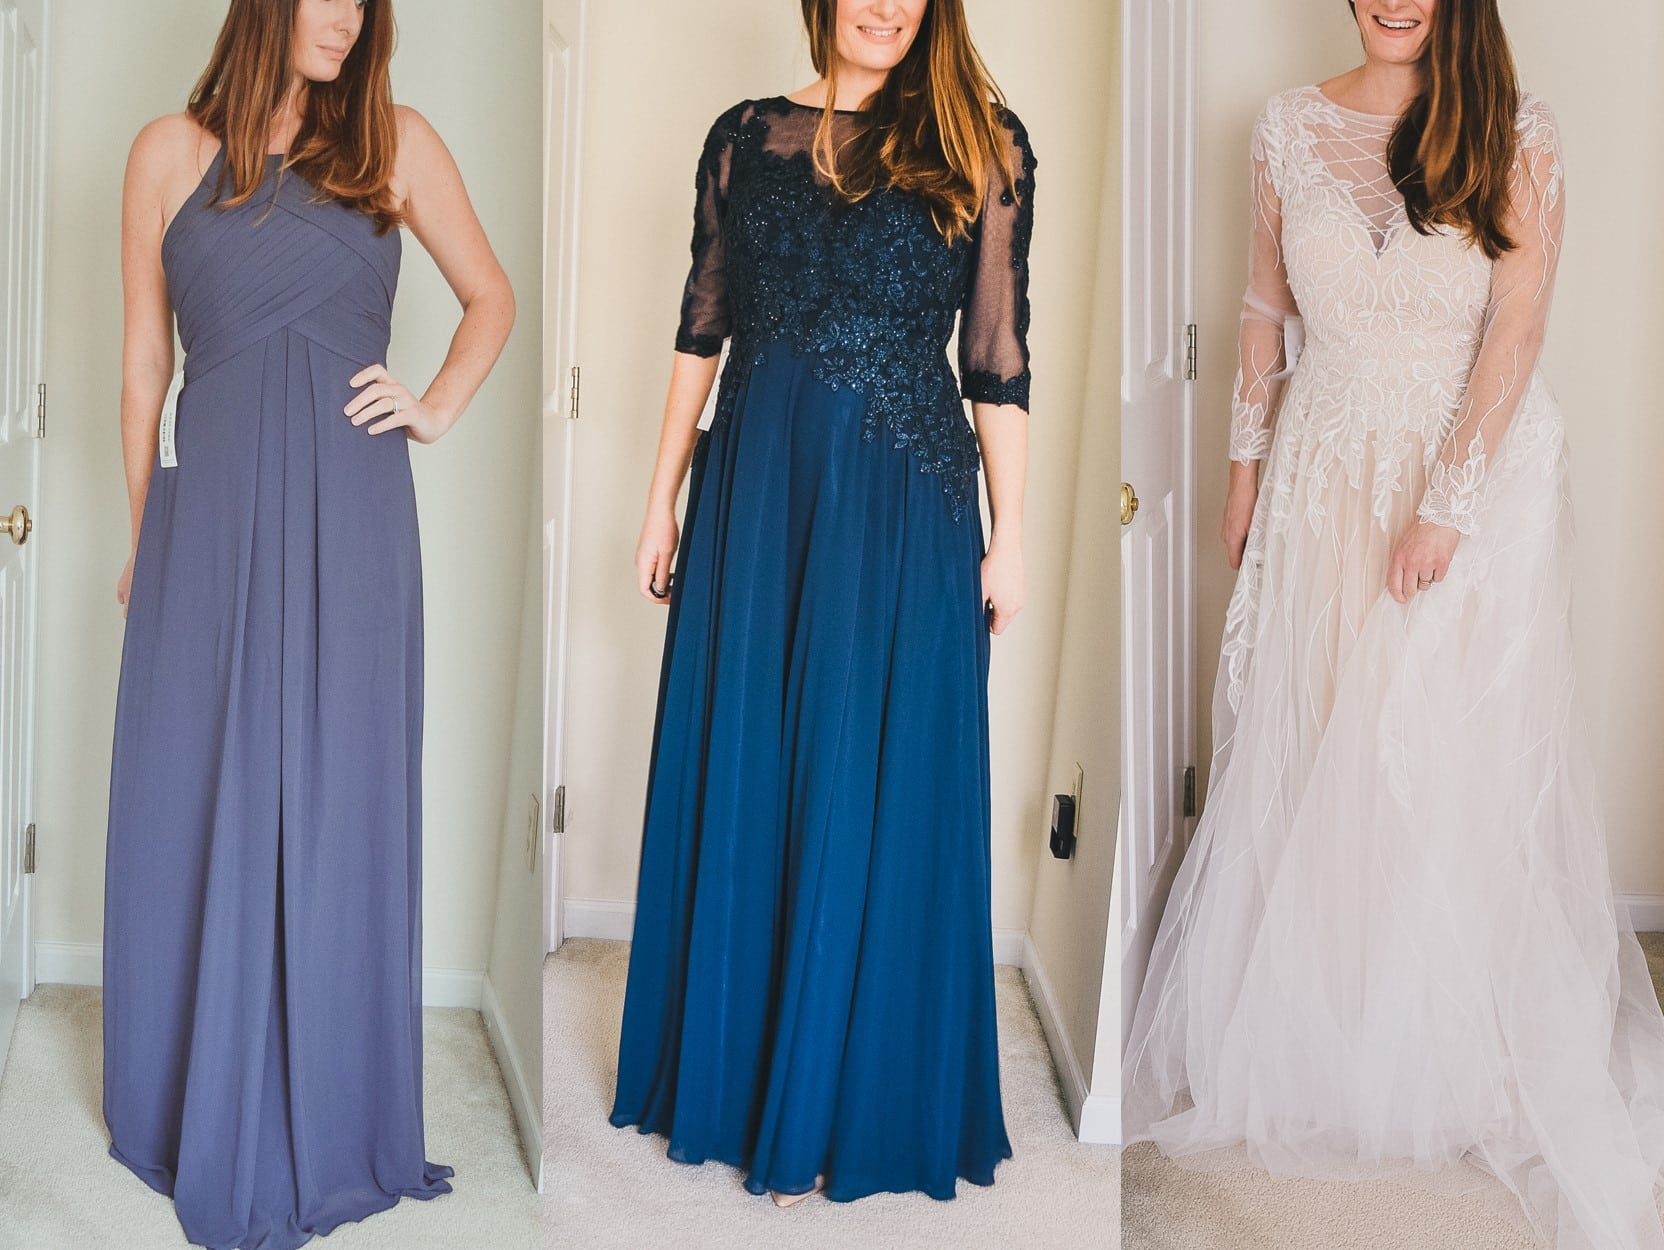 f53dfcc8c56a8 Trying Out Dresses from the Azazie Try At Home Program | Dress for ...